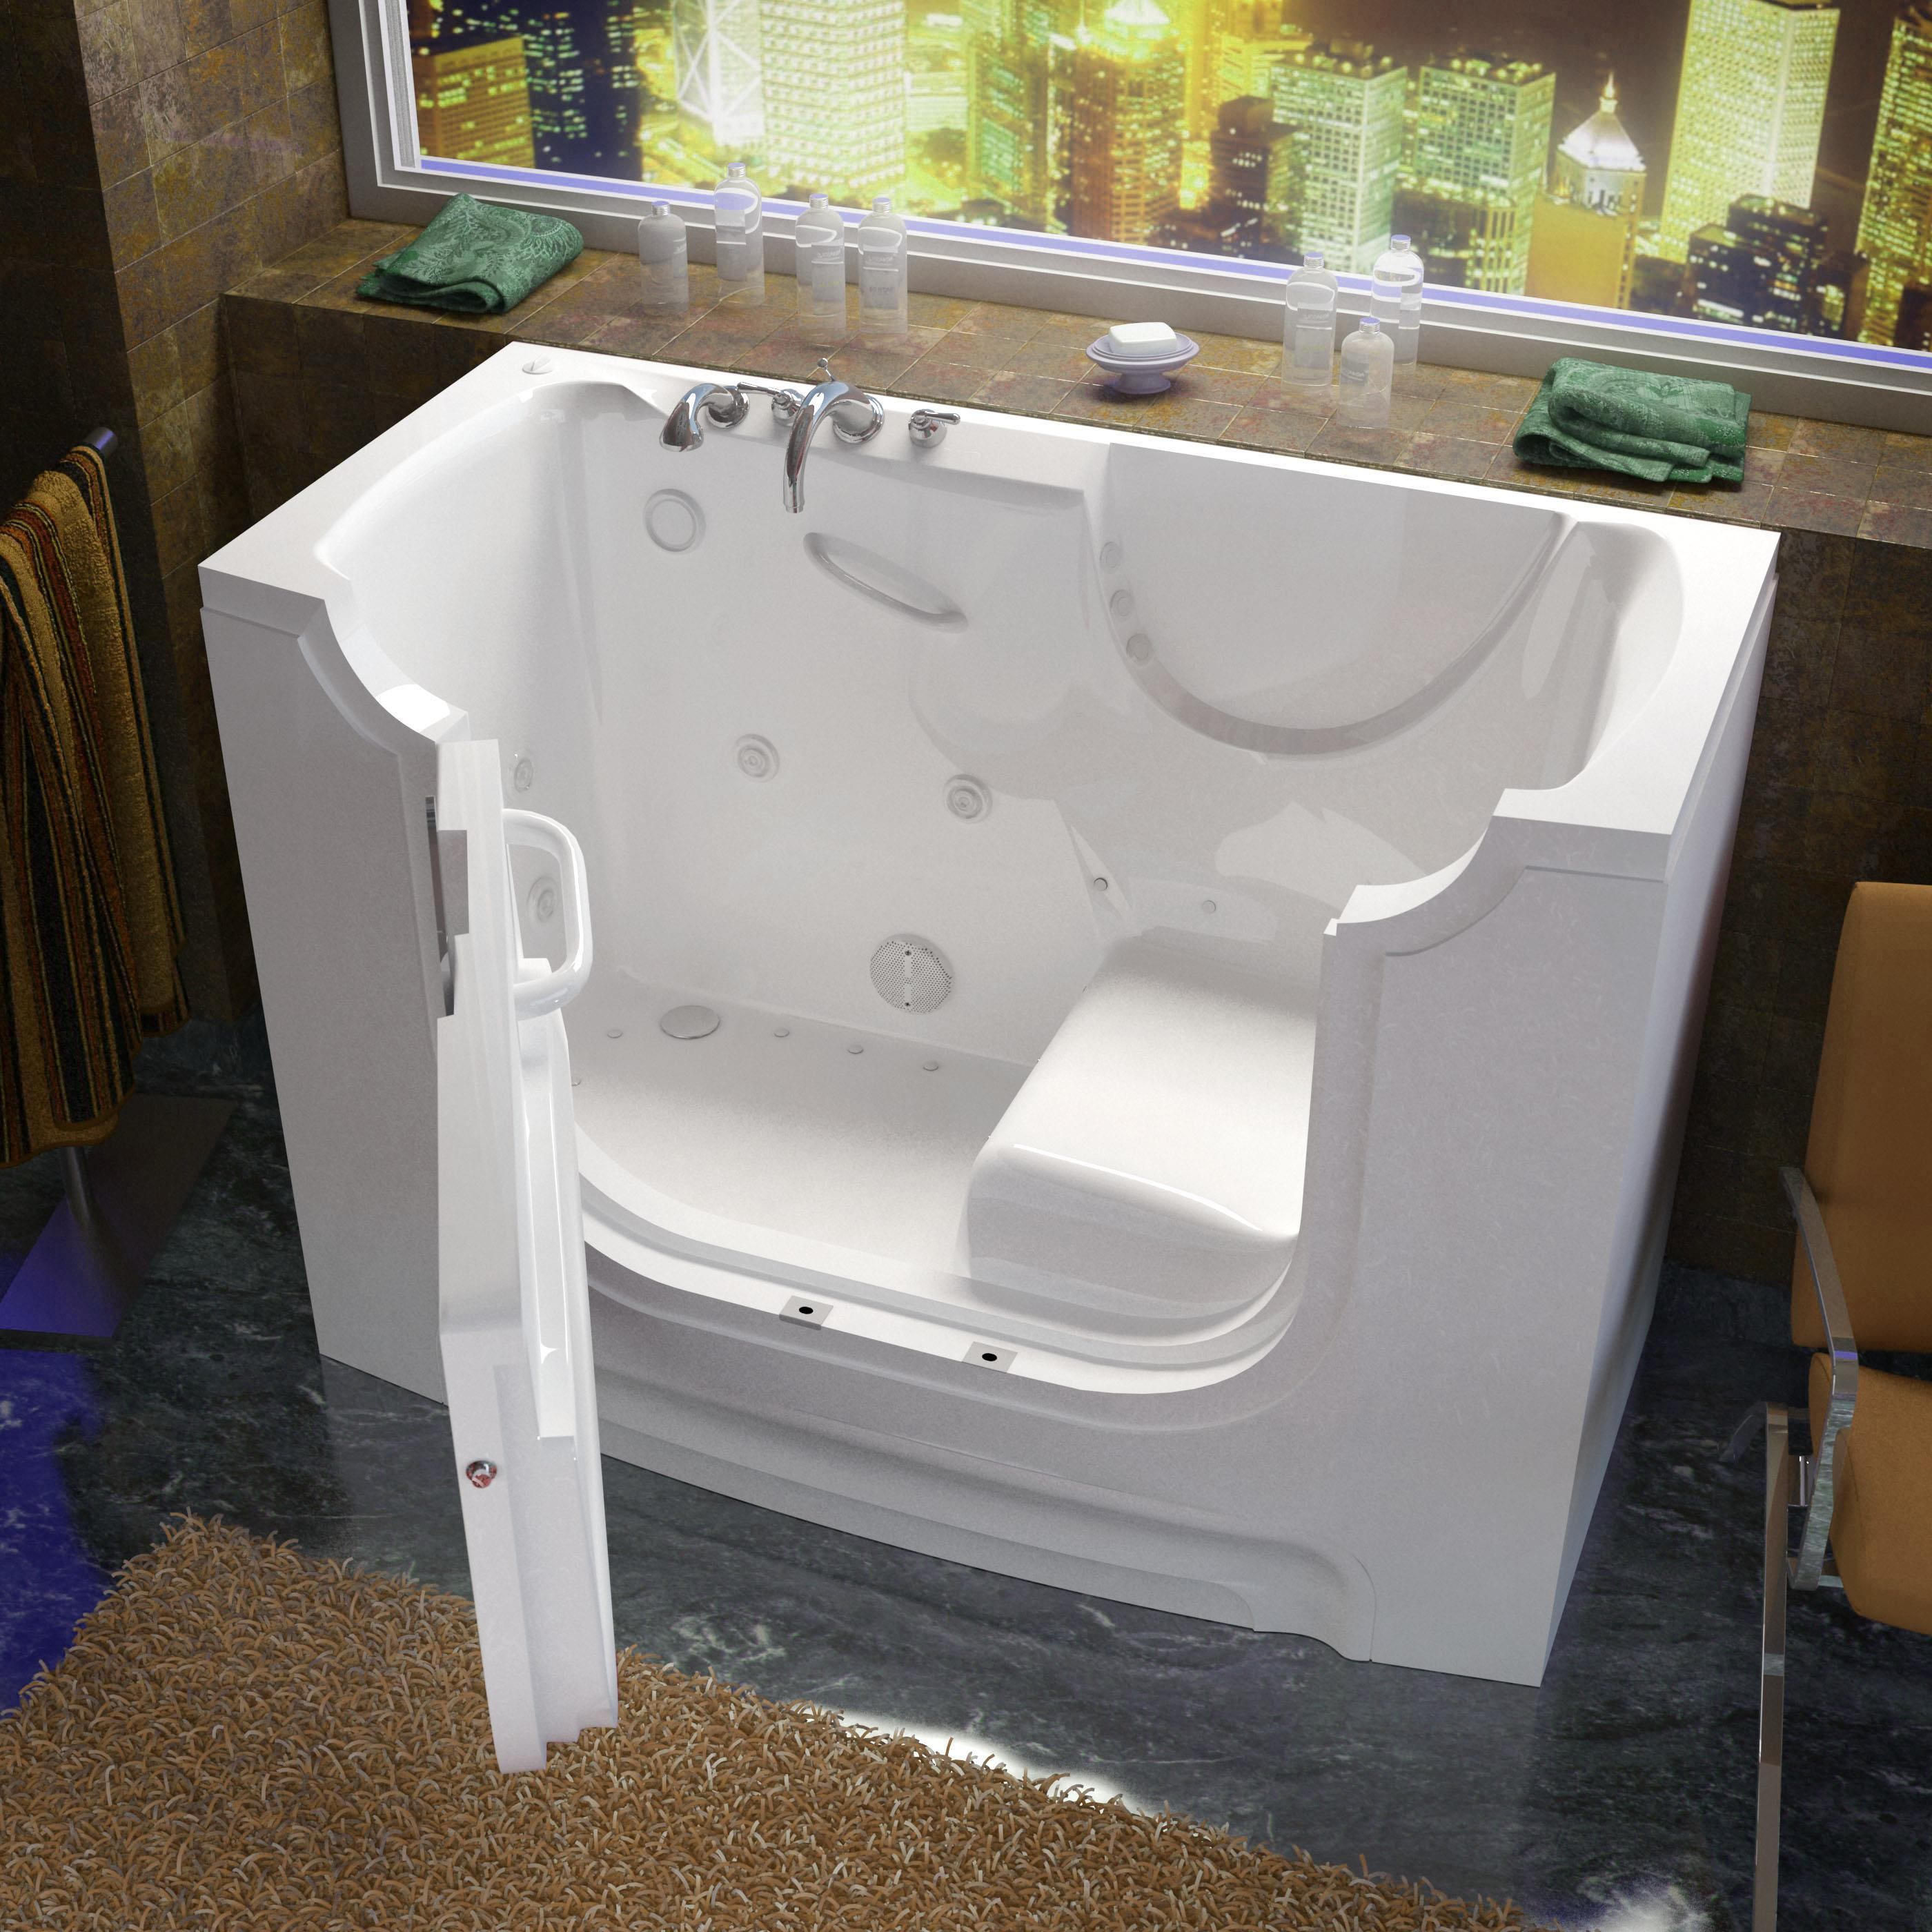 Venzi 30x60 Left Drain White Whirlpool & Air Jetted Wheel...